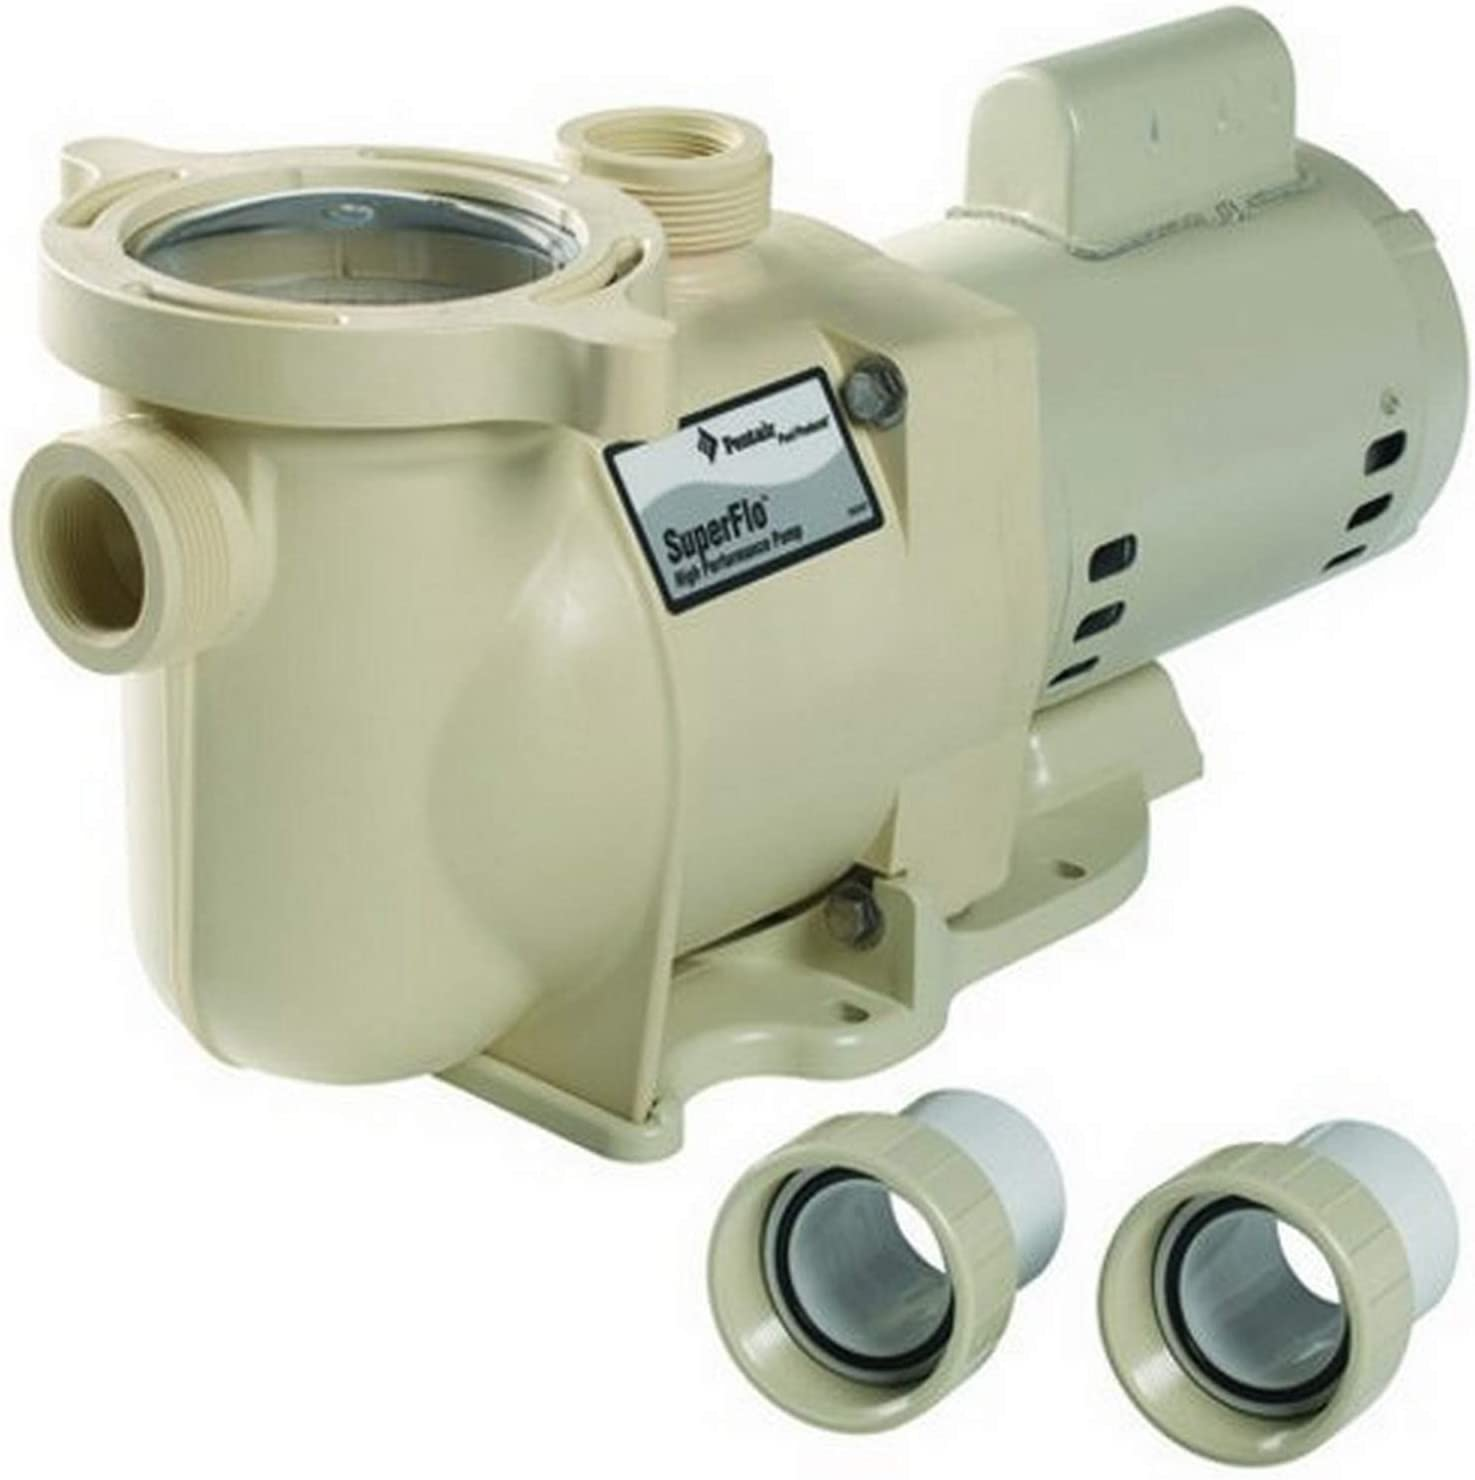 Pentair SF-N1-2AE SuperFlo Single Speed Energy Efficient Pump, 2 HP